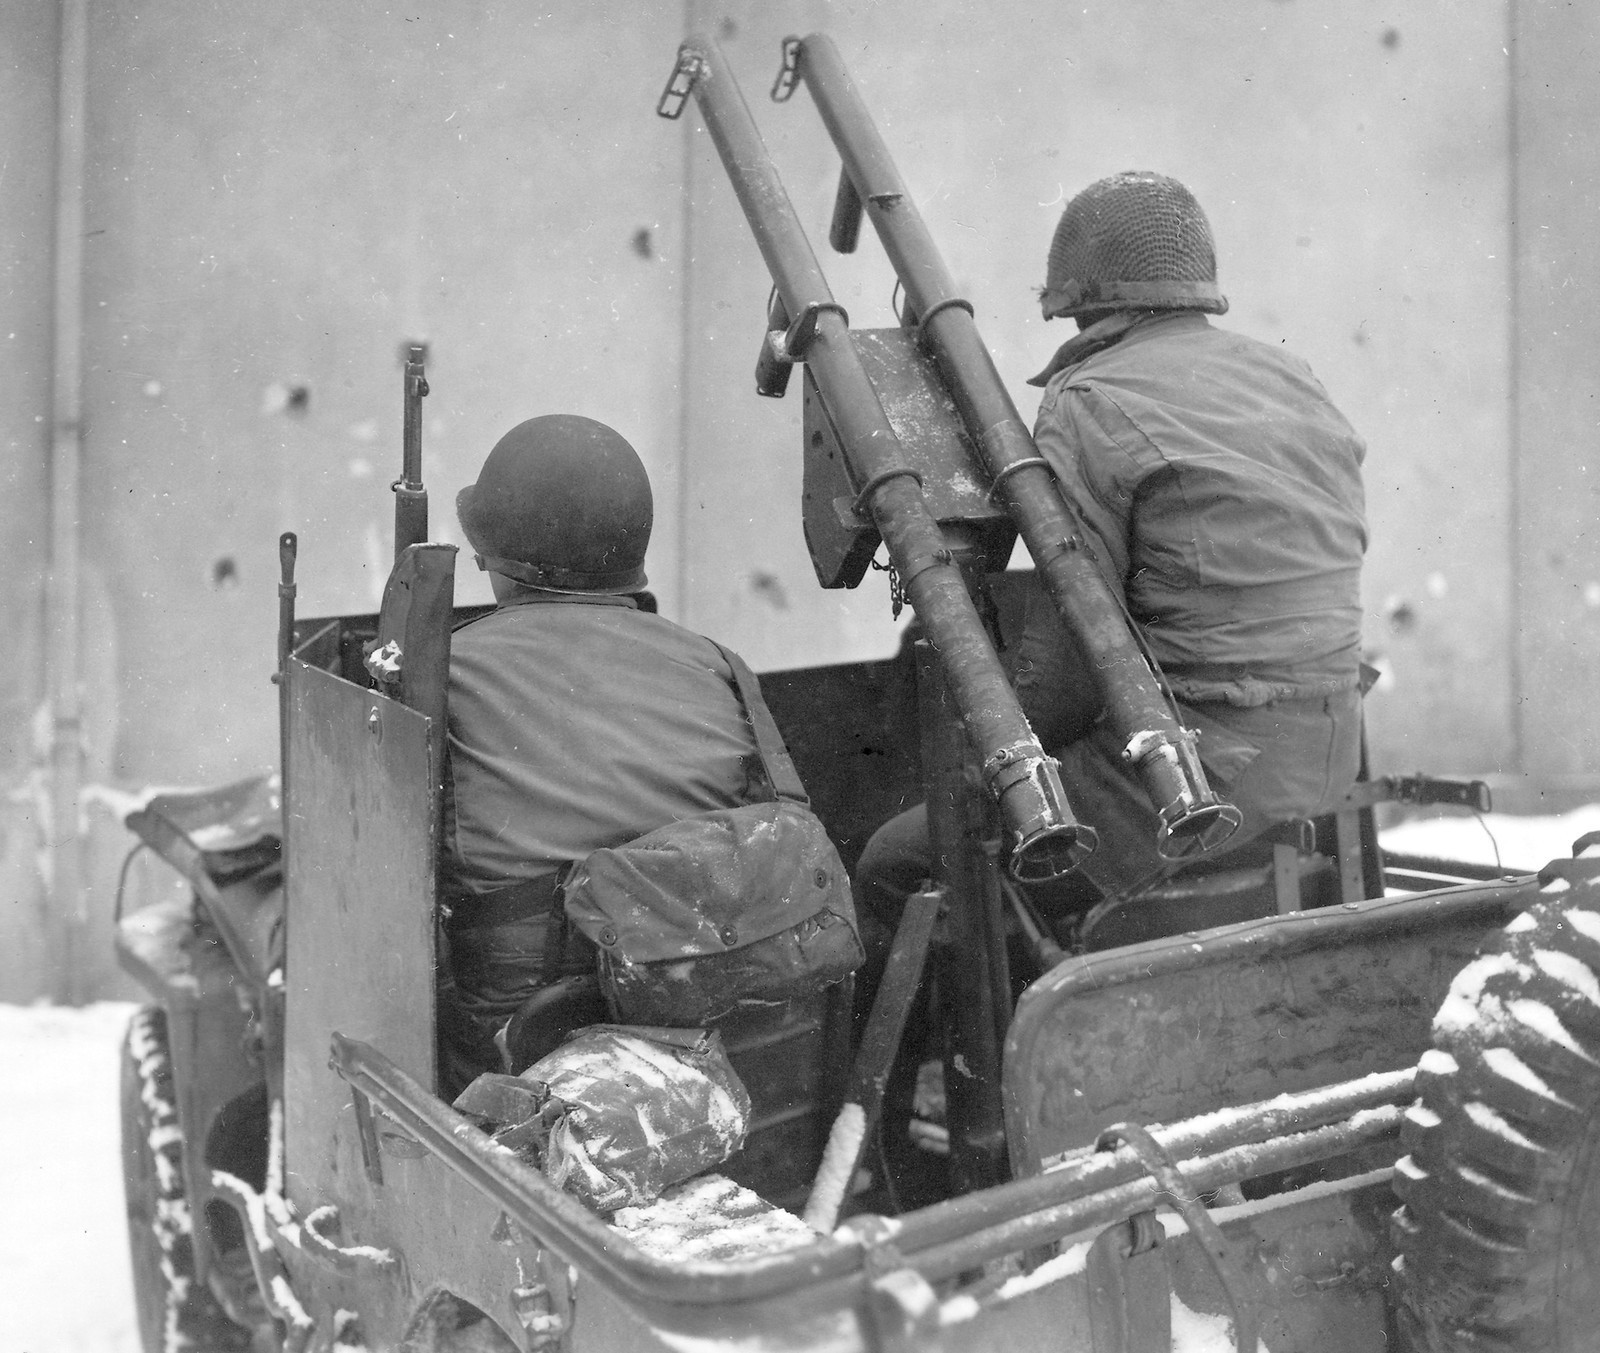 Field modification to a jeep, manned by T/5 Louis Gergye and Pvt William Jump of I&R Platoon, 60th Infantry Regiment, 9th Infantry Division.Field modification to a jeep, manned by T/5 Louis Gergye and Pvt William Jump of I&R Platoon, 60th Infantry Regiment, 9th Infantry Division